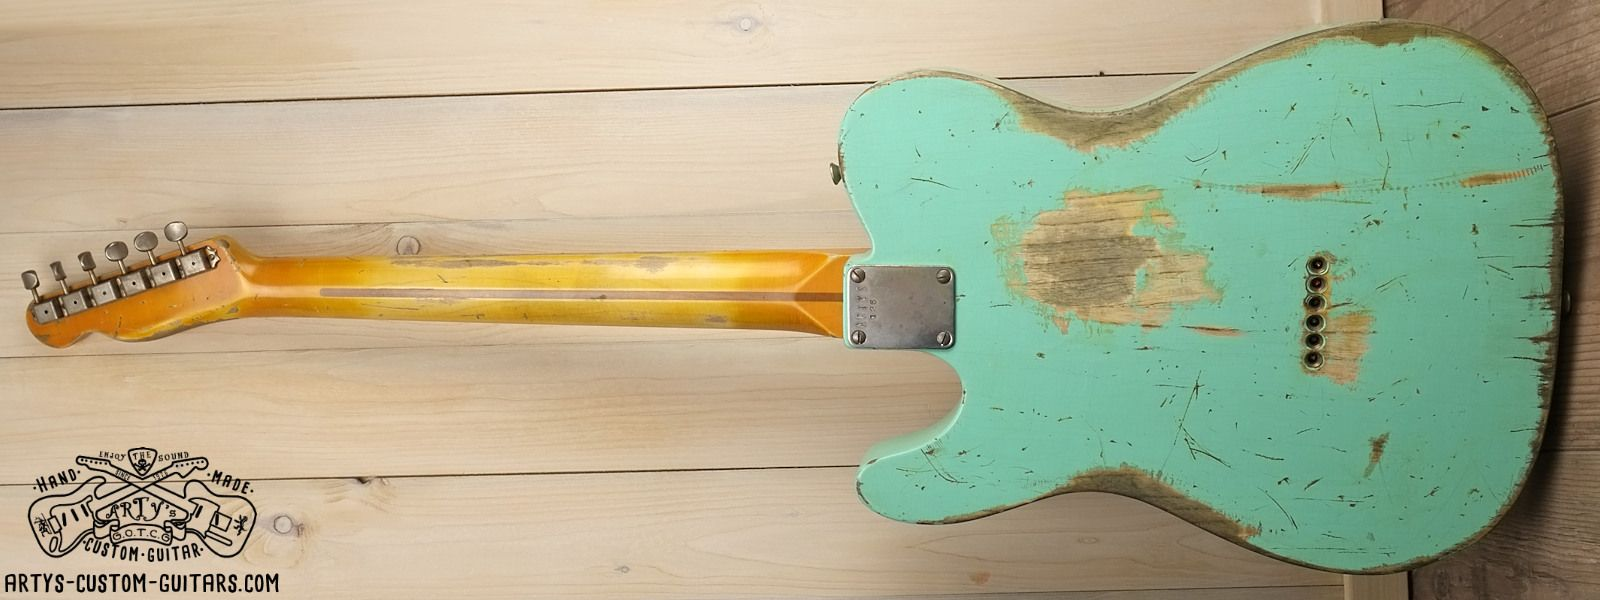 Telecaster Heavy Relic Body Artys Custom Guitars Shop Tele Relicing Fender Bass Wiring Diagram Aged Gallery Prewired Kit Harness Assembly Stratocaster P J Les Paul Jr